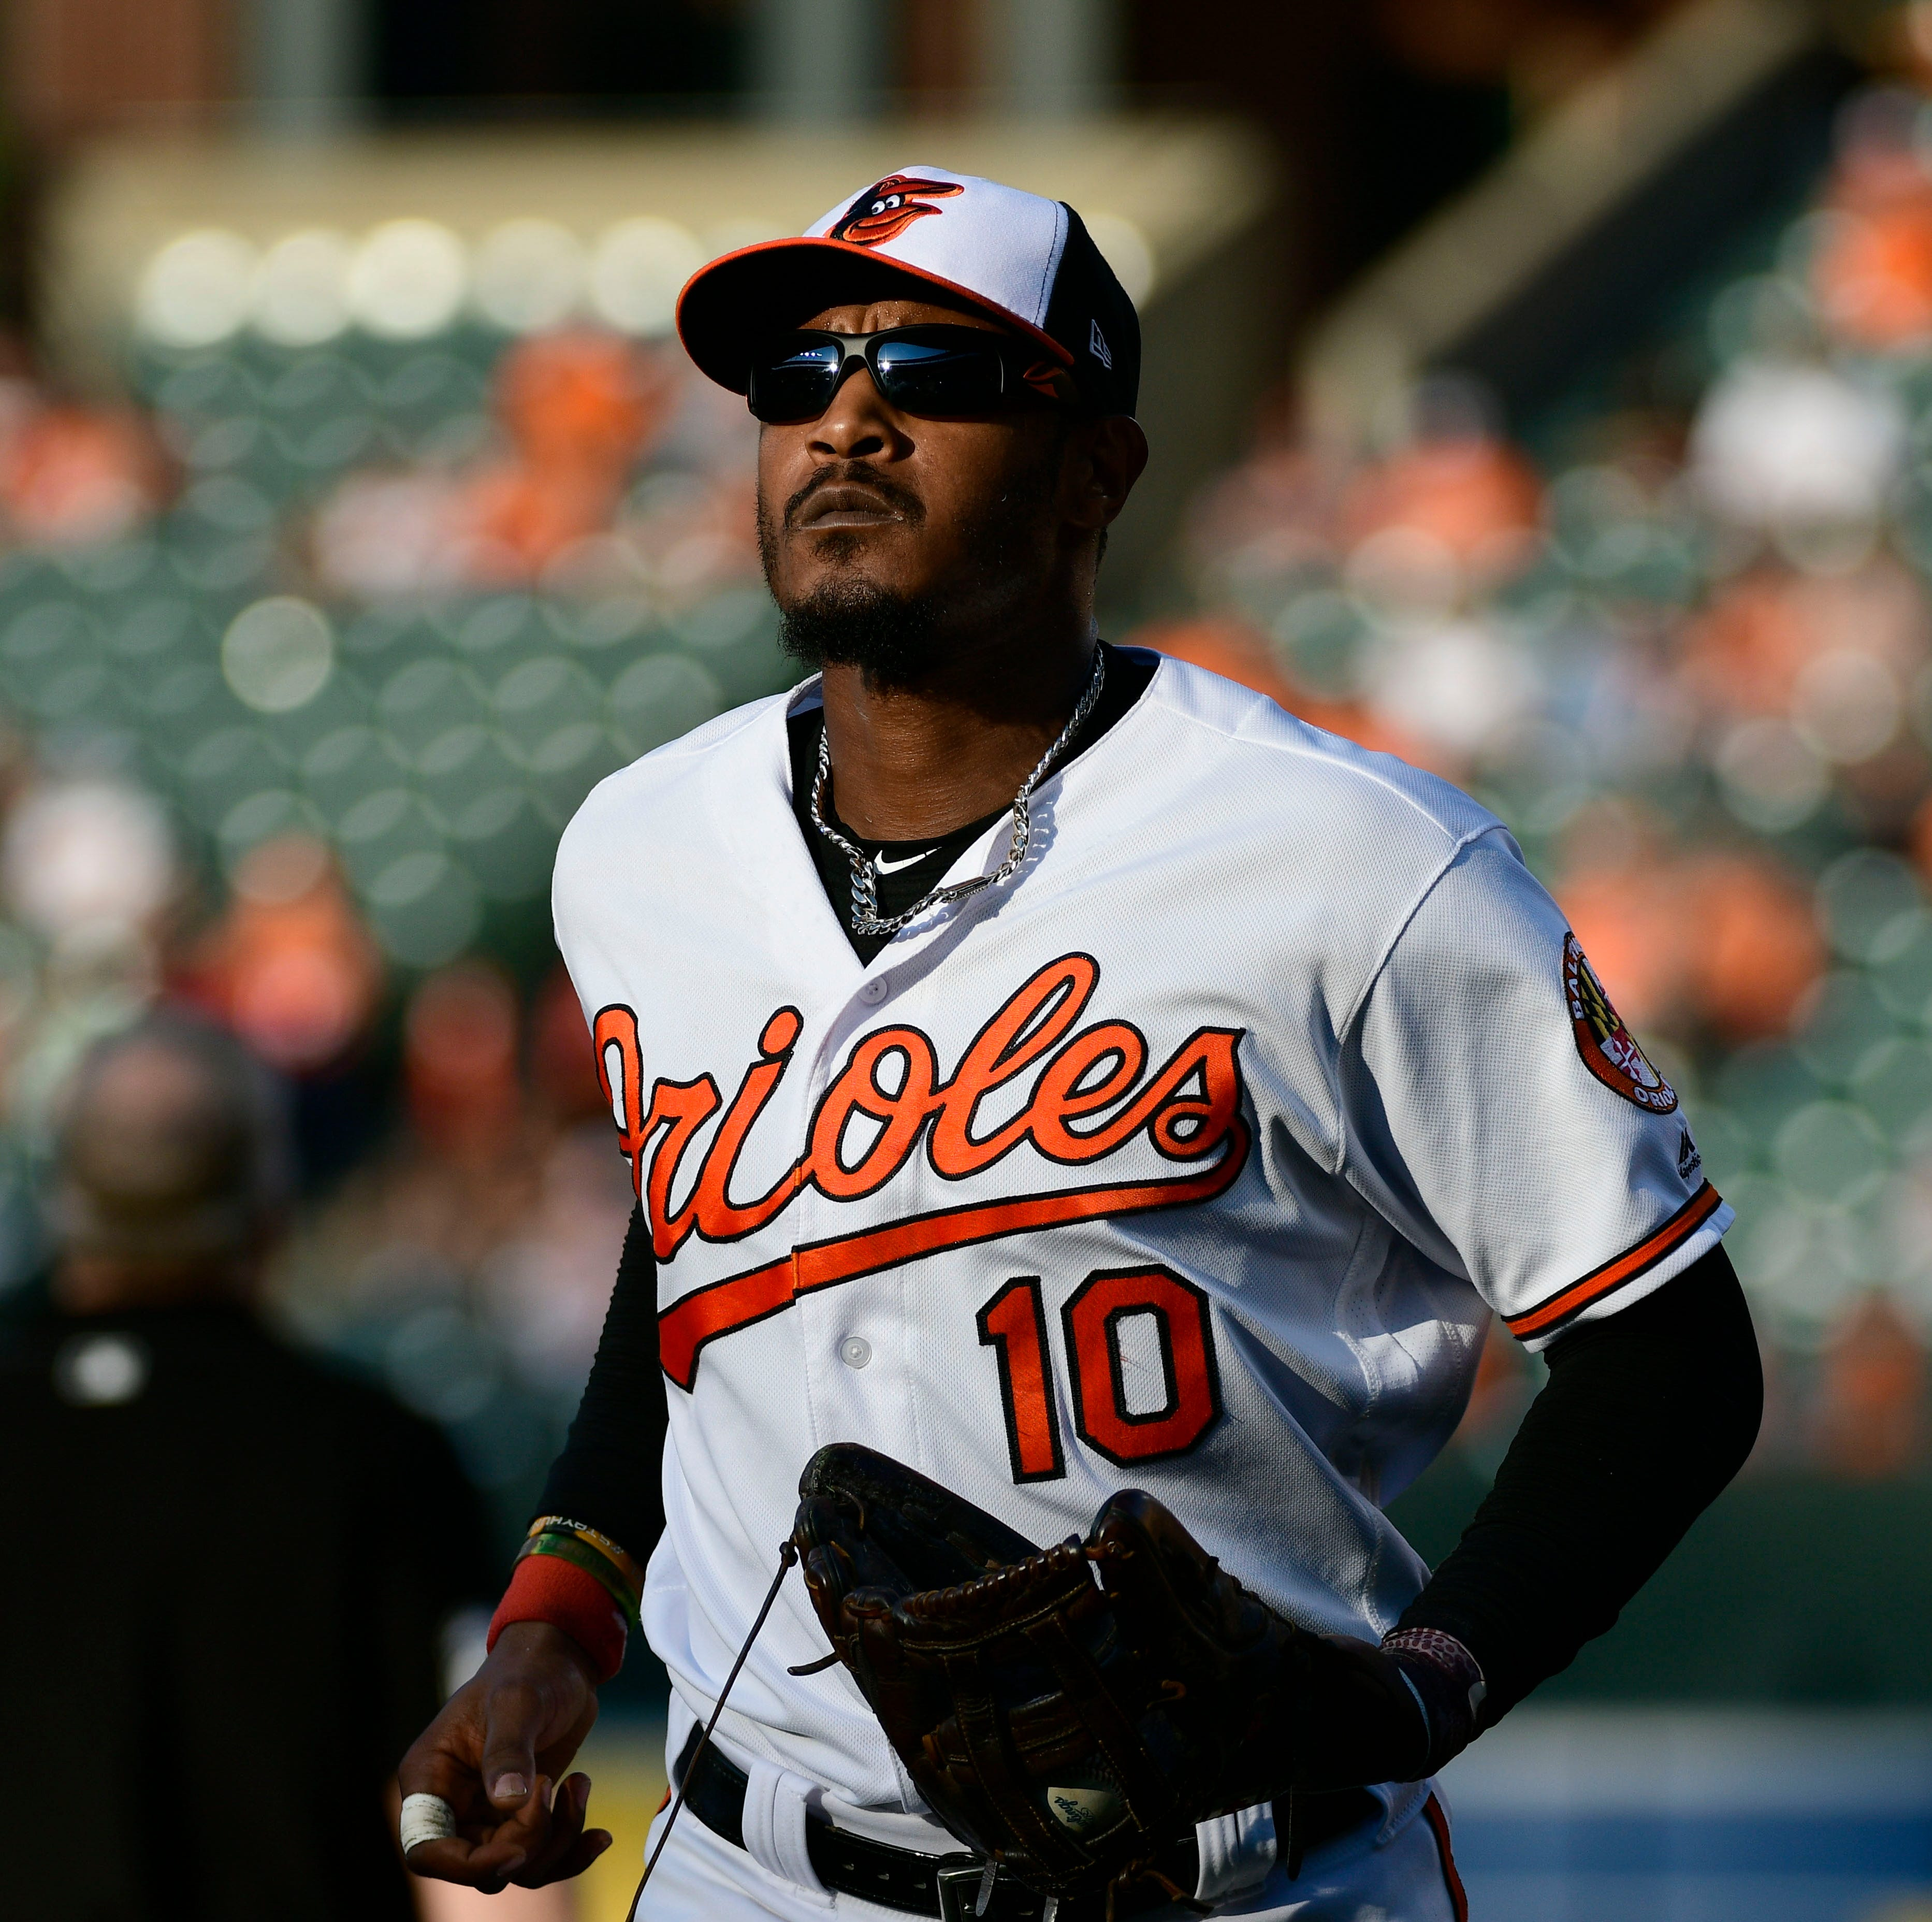 Arizona Diamondbacks have differing views on how Adam Jones fits their outfield